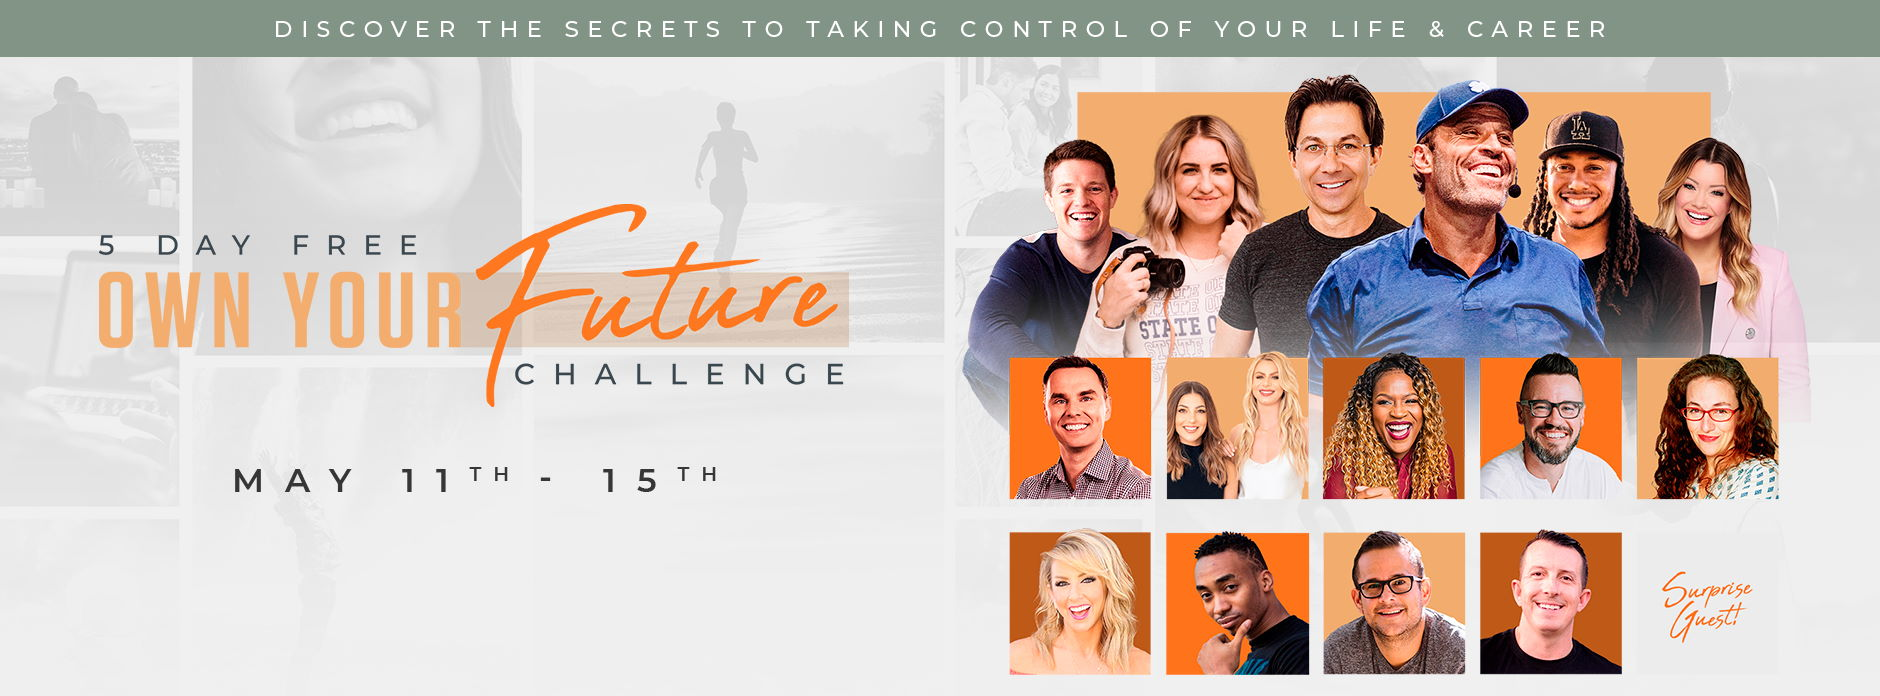 tony robbins virtual events own your future challenge 2021